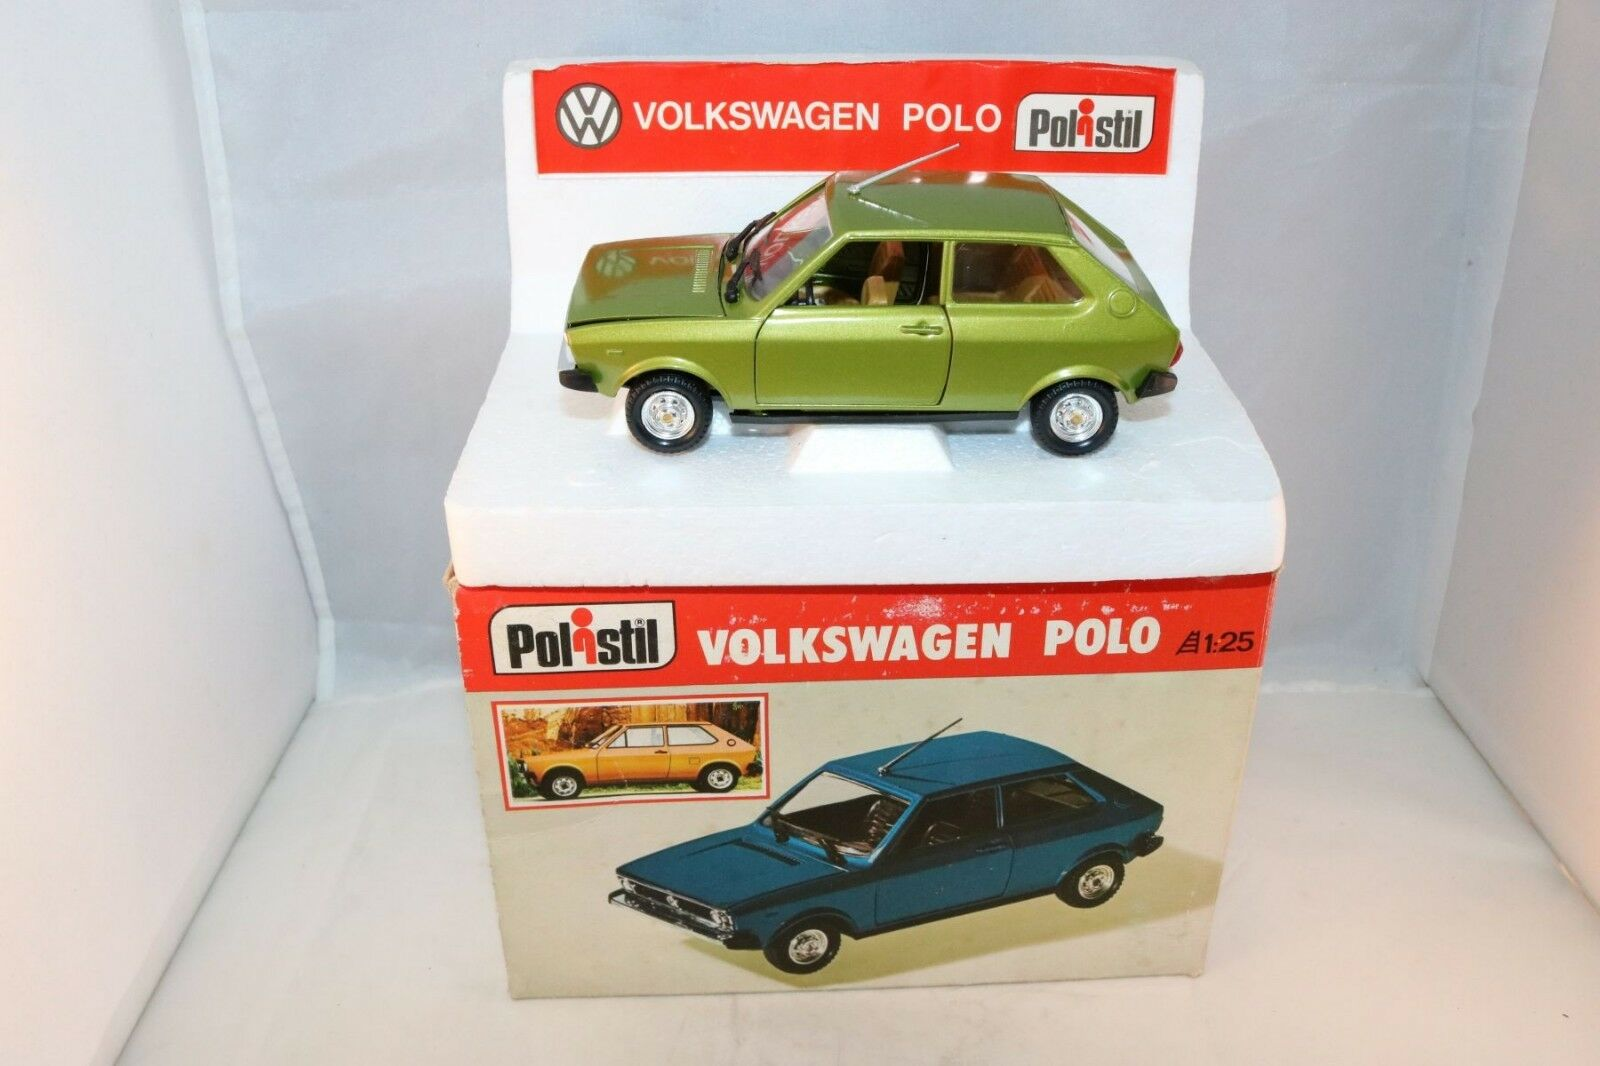 Polistil S25 S.25 Volkswagen Polo 99.9%  mint in box 1 25 selten Superb